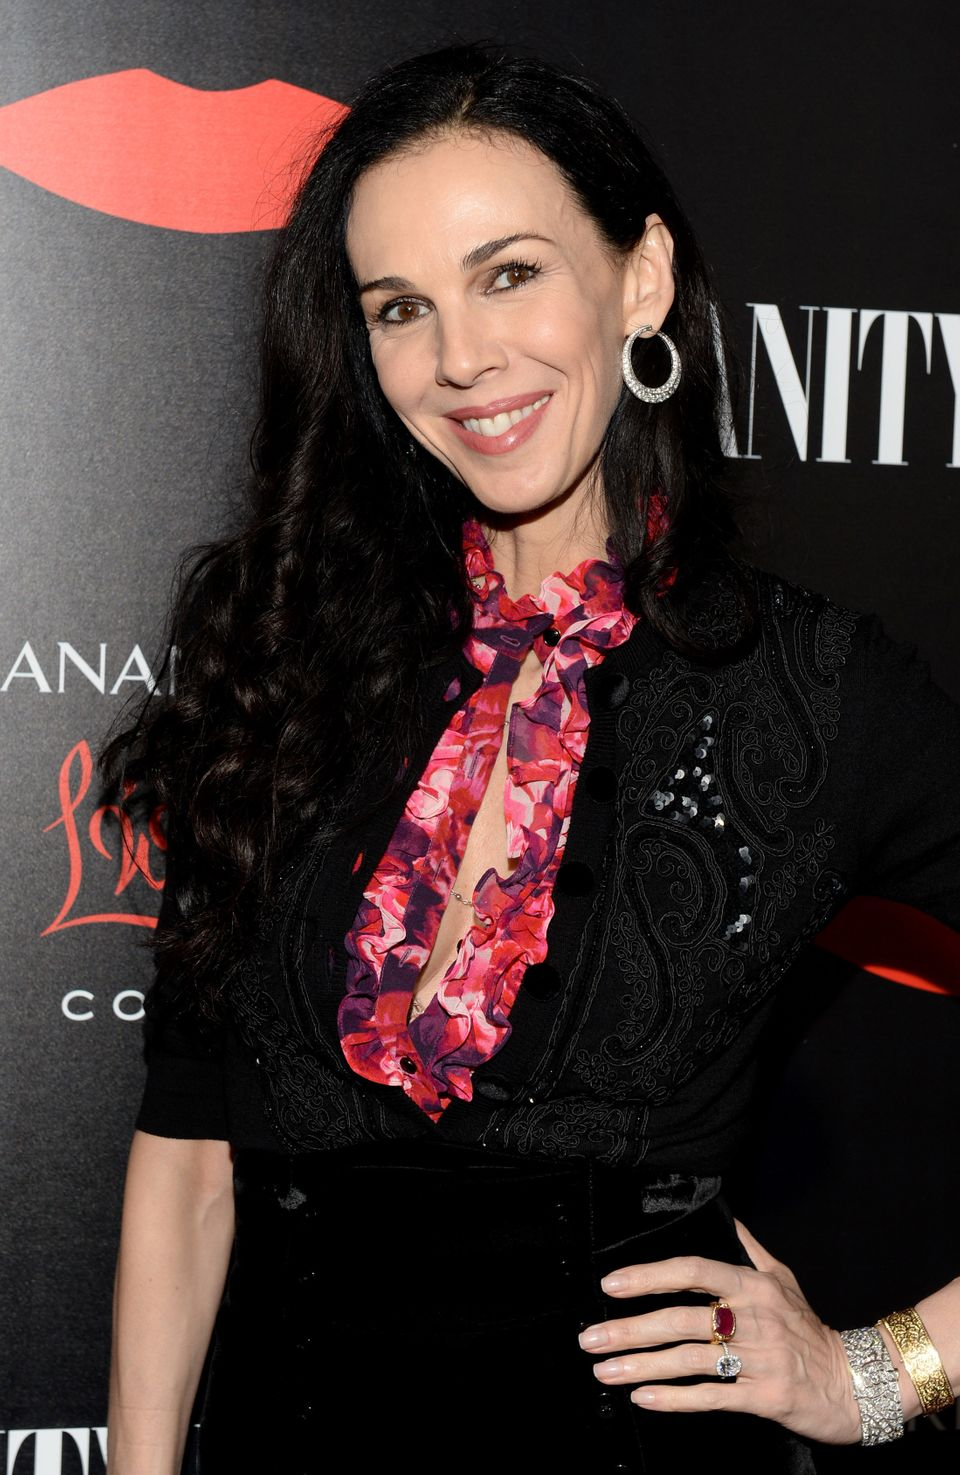 "L'Wren Scott, fashion designer and Rolling Stones frontman Mick Jagger's longtime girlfriend, <a href=""https://www.huffpost.c"